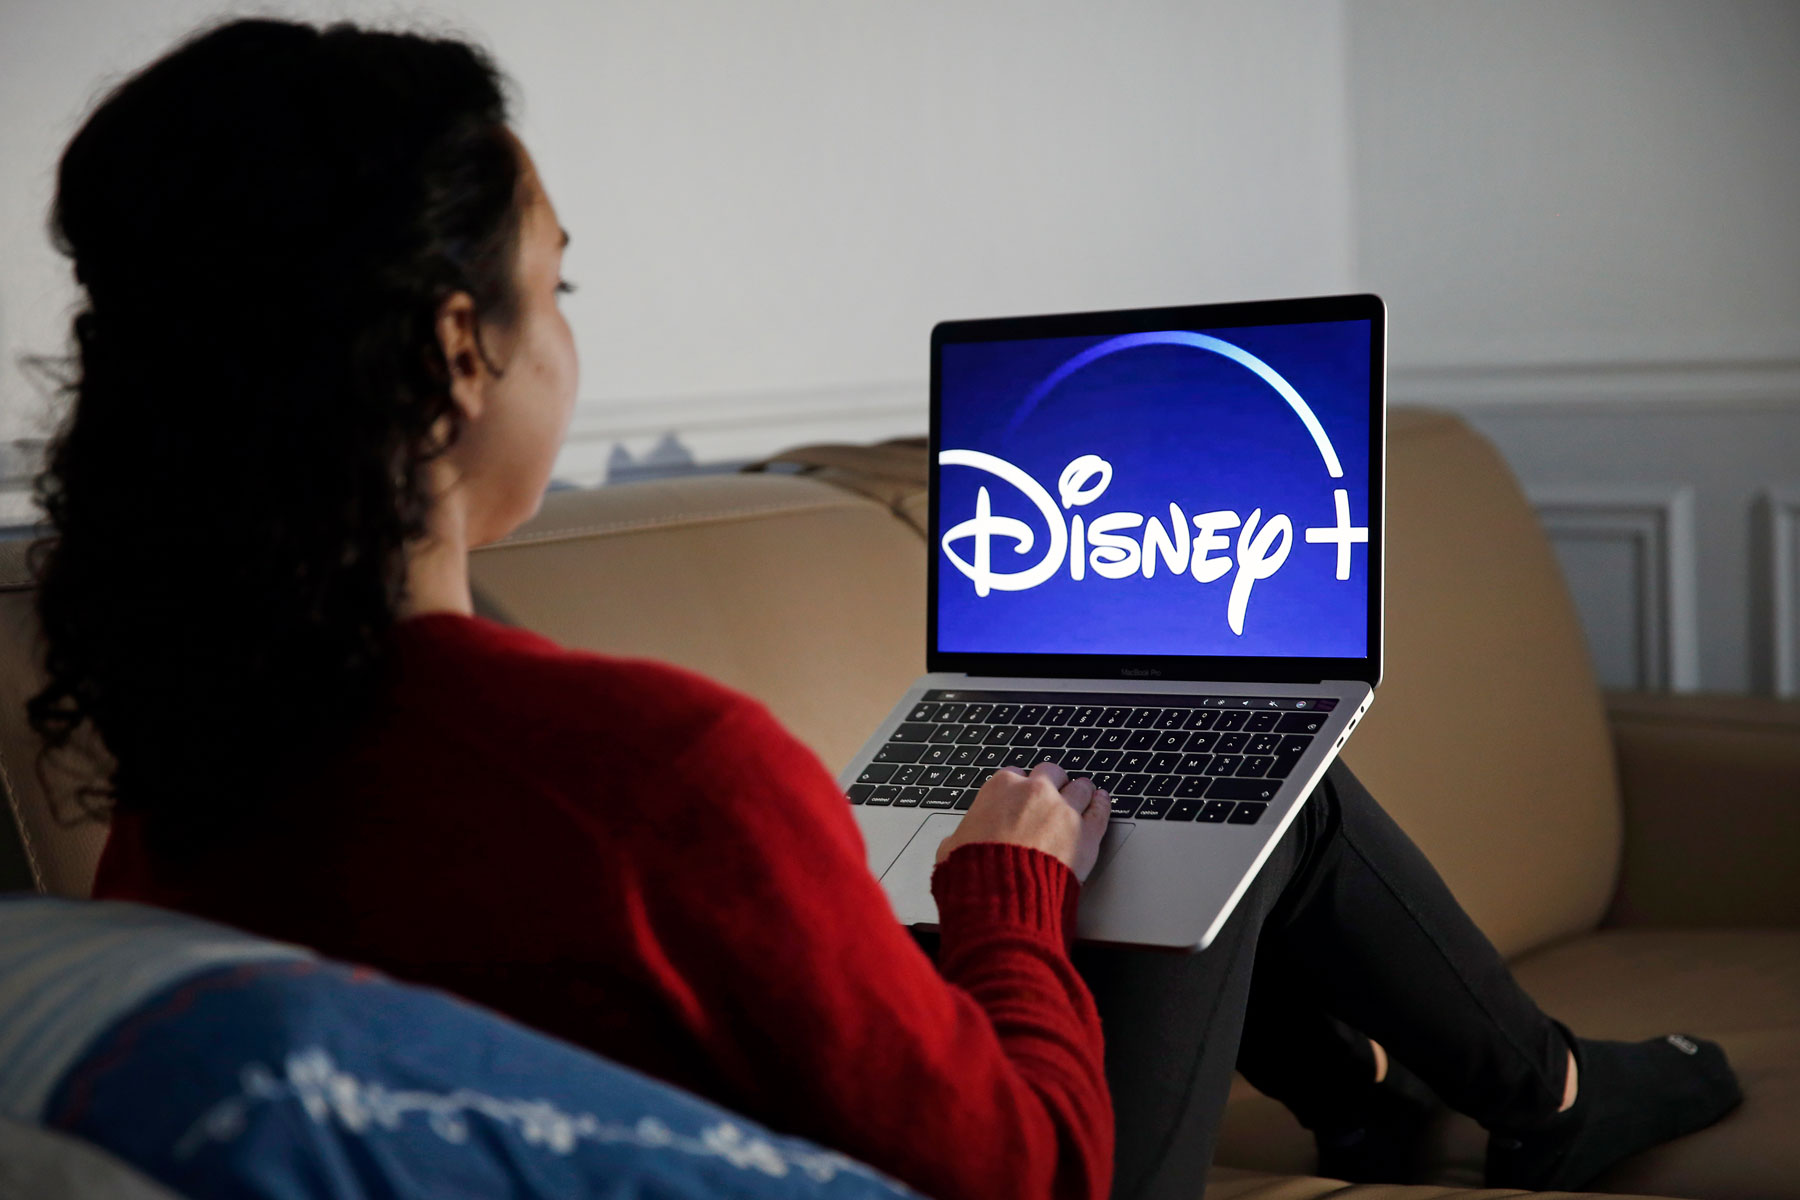 woman watching Disney+